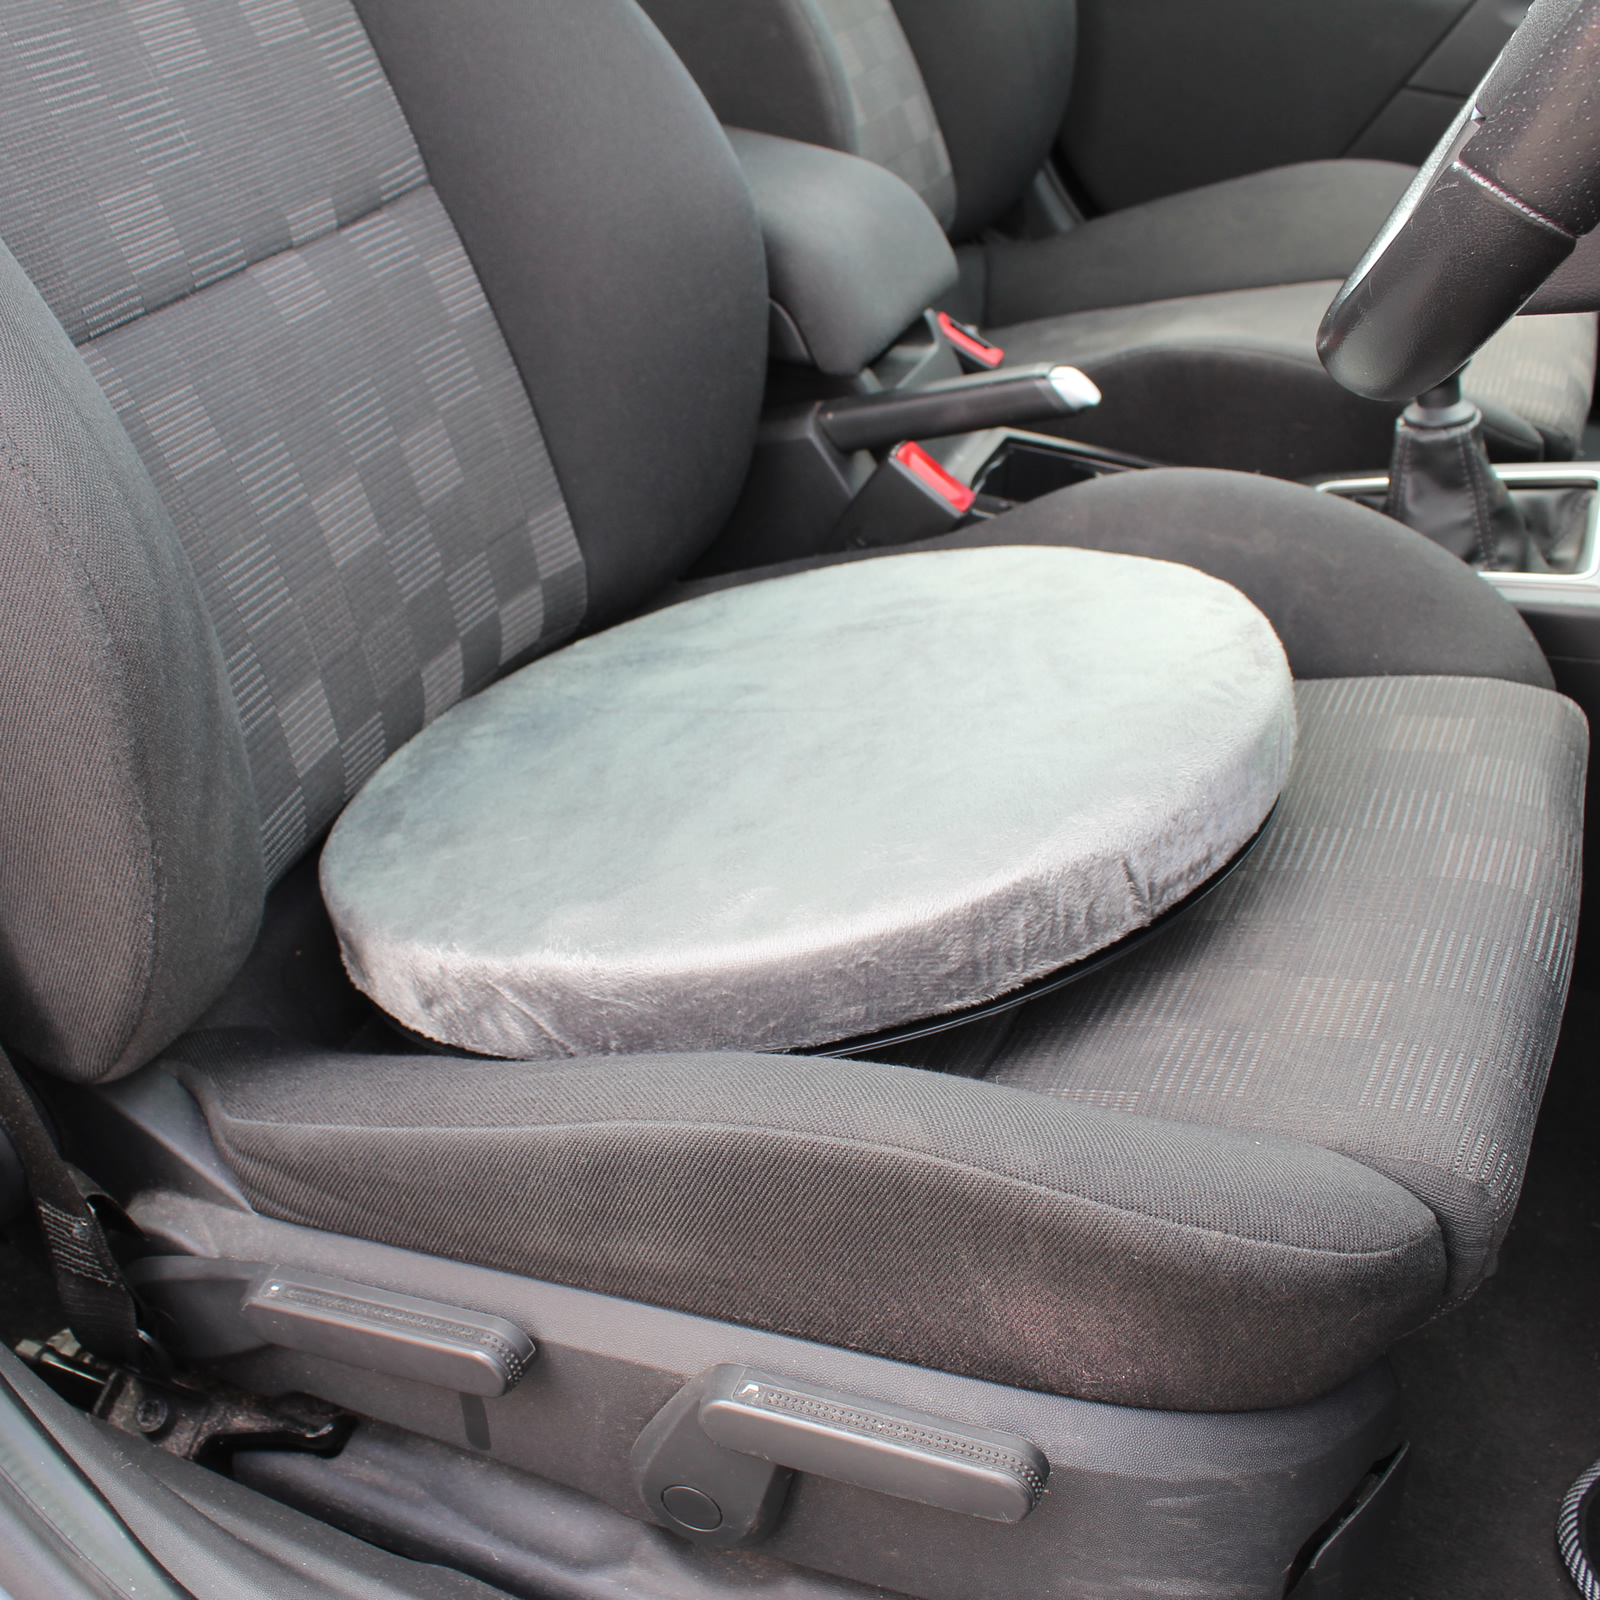 Sentinel ROTATING SWIVEL SEAT CUSHION DINING CHAIR CAR SPINNING MOBILITY AID PAD COMFY